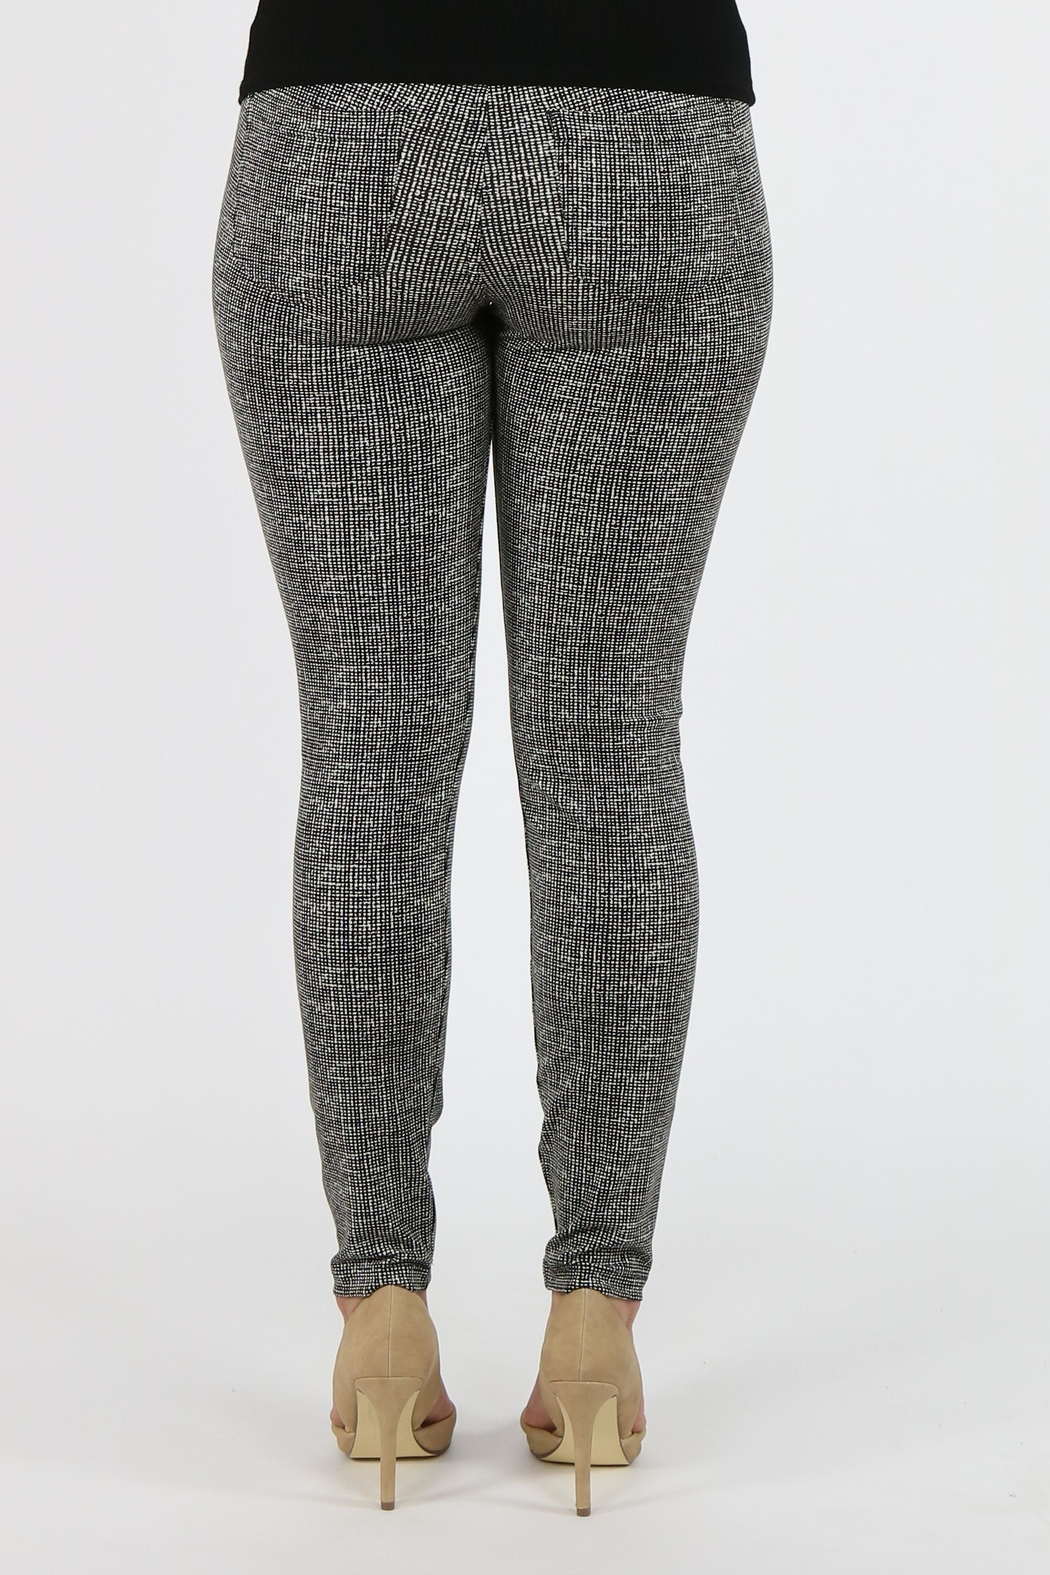 Liverpool Jeans Company Sienna Leggings Whisper-White - Side Cropped Image